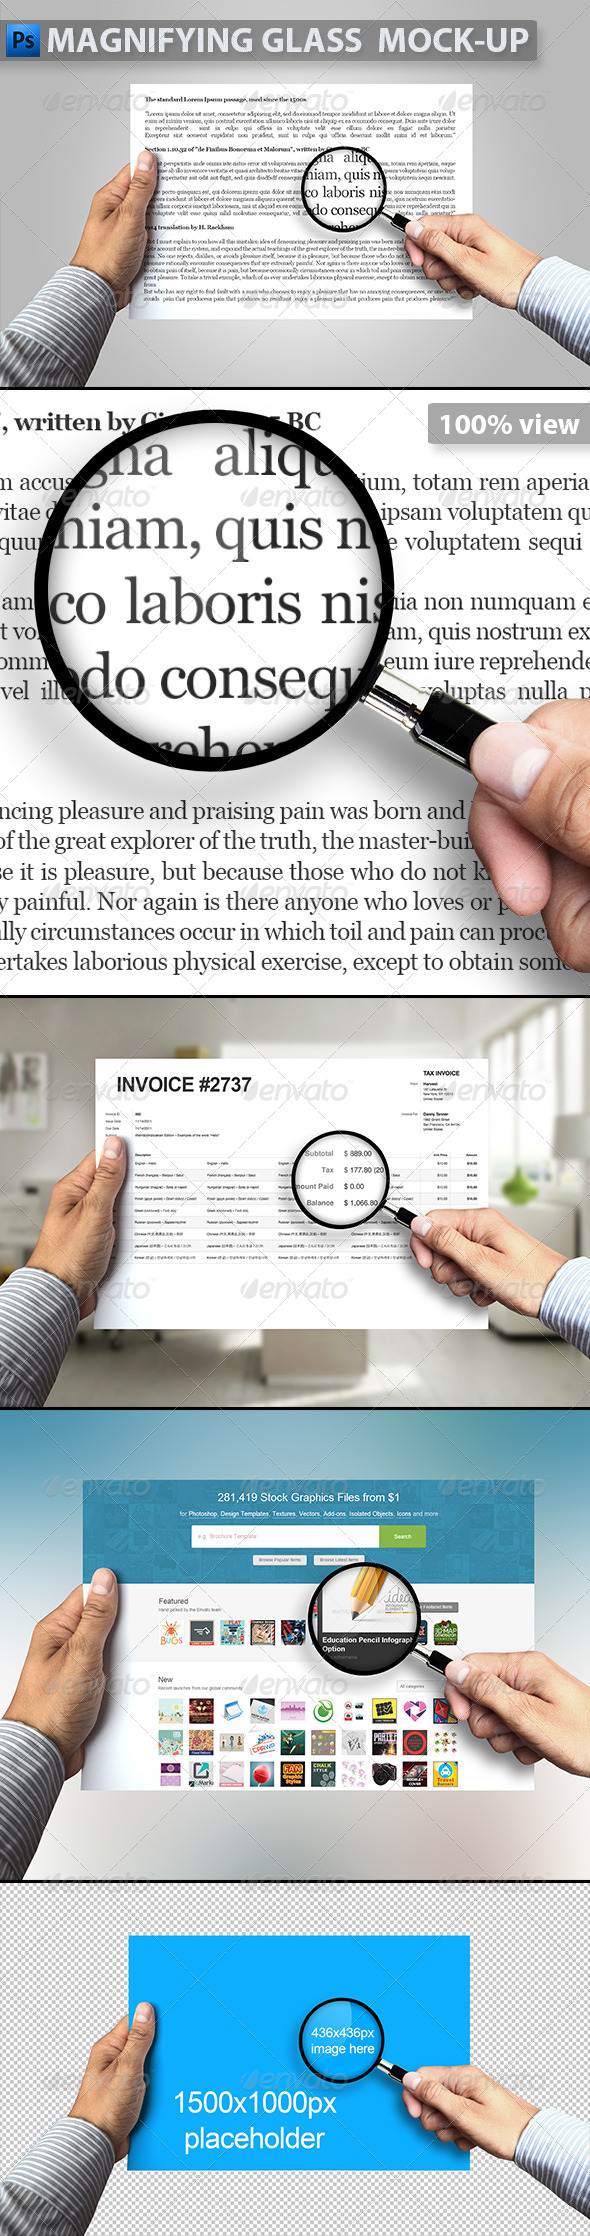 GraphicRiver Magnifying Glass and Paper in Hand Mock-up 8721501